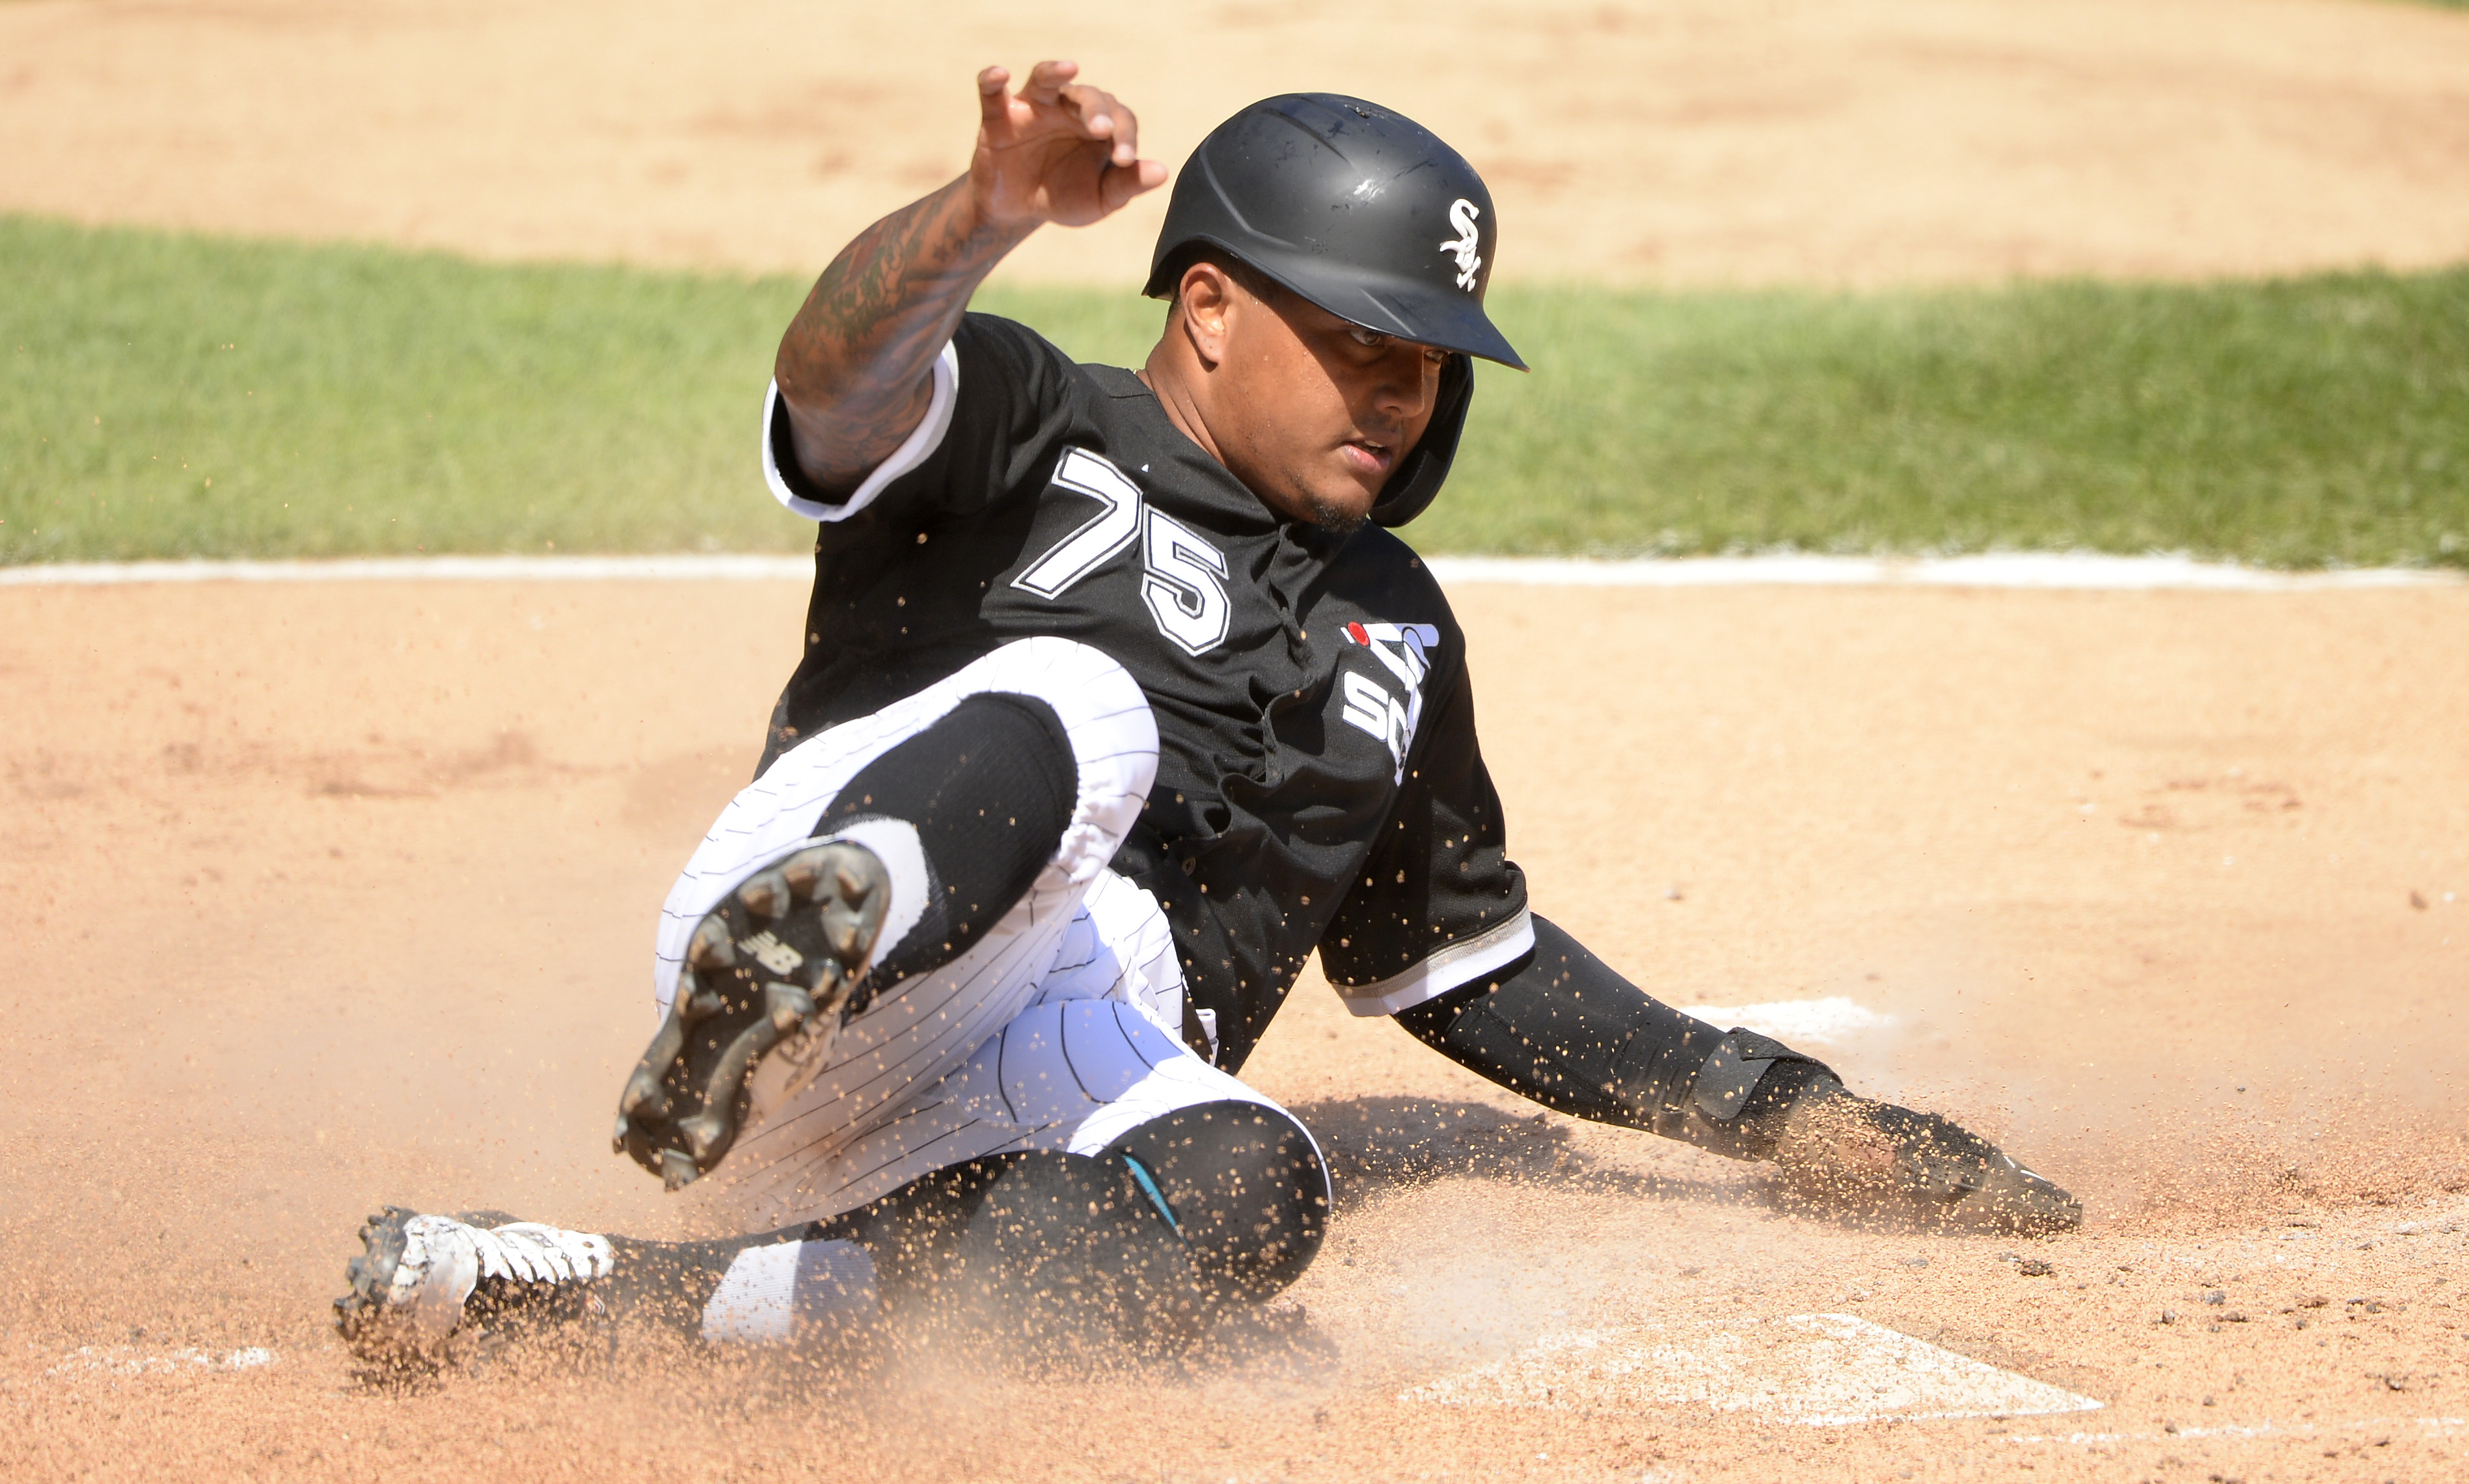 Chicago White Sox Summer Workout